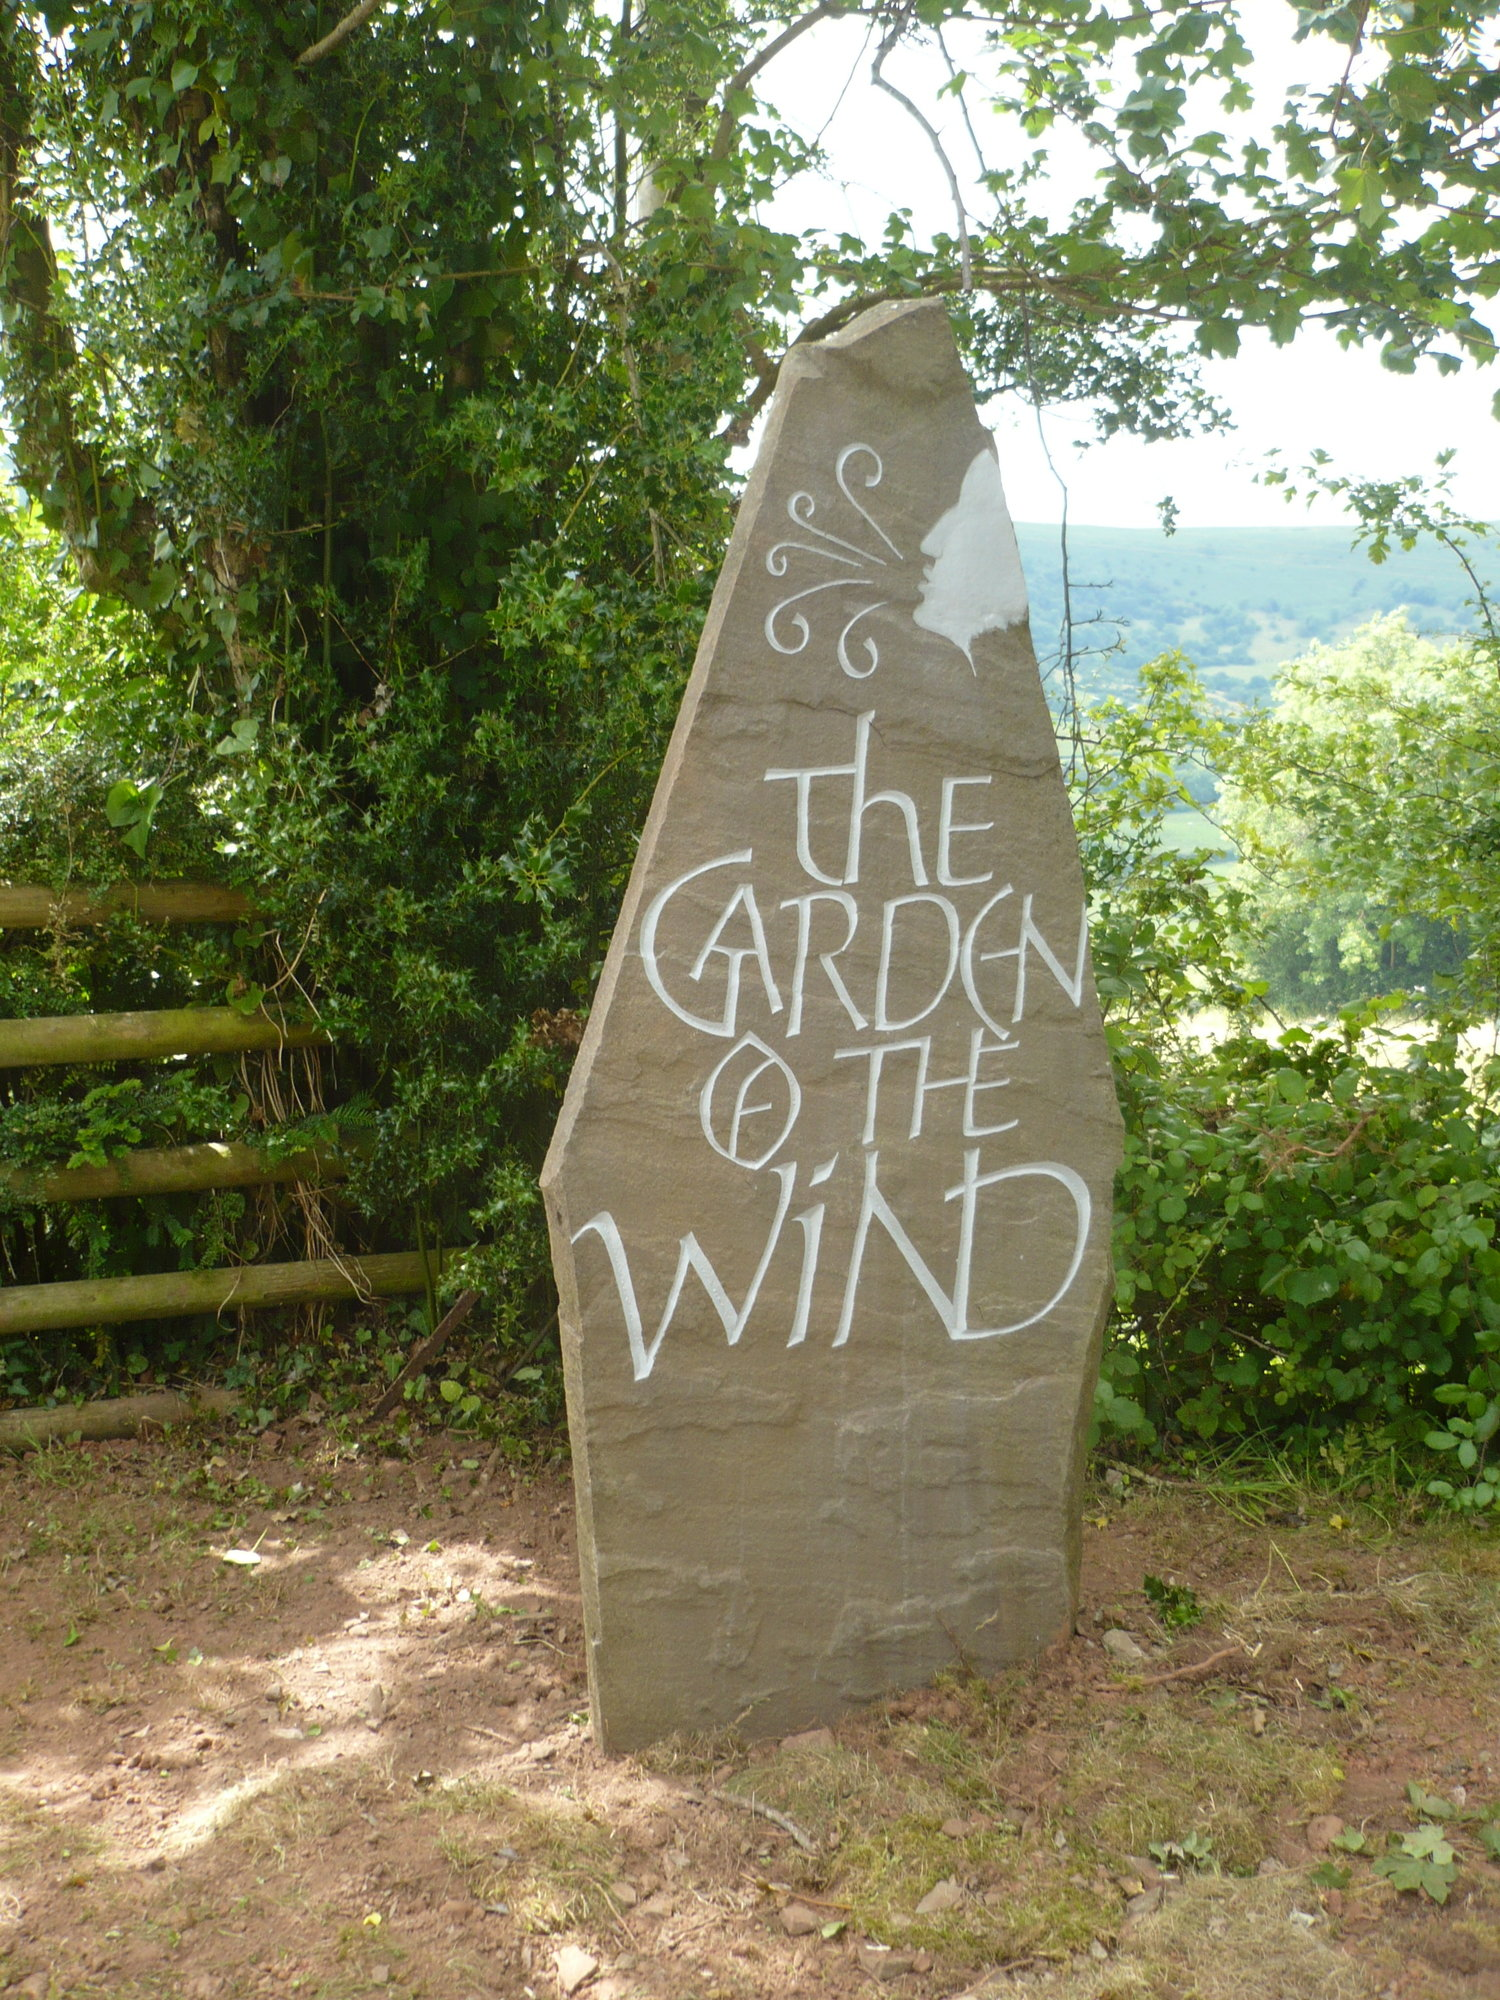 The Garden of the Wind